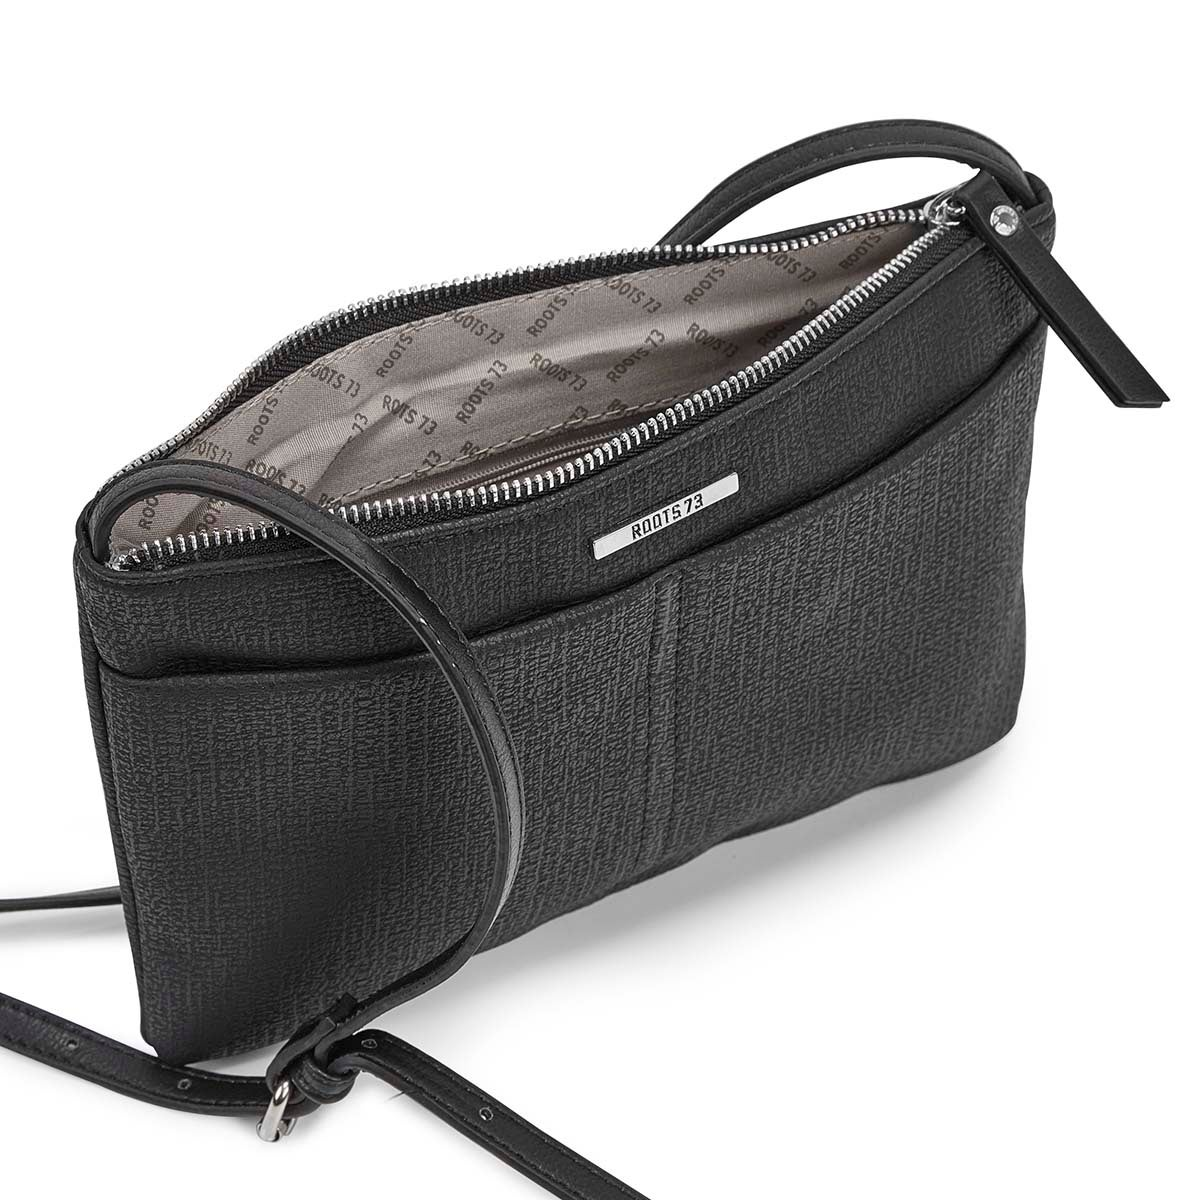 Lds black east/west top zip crossbody